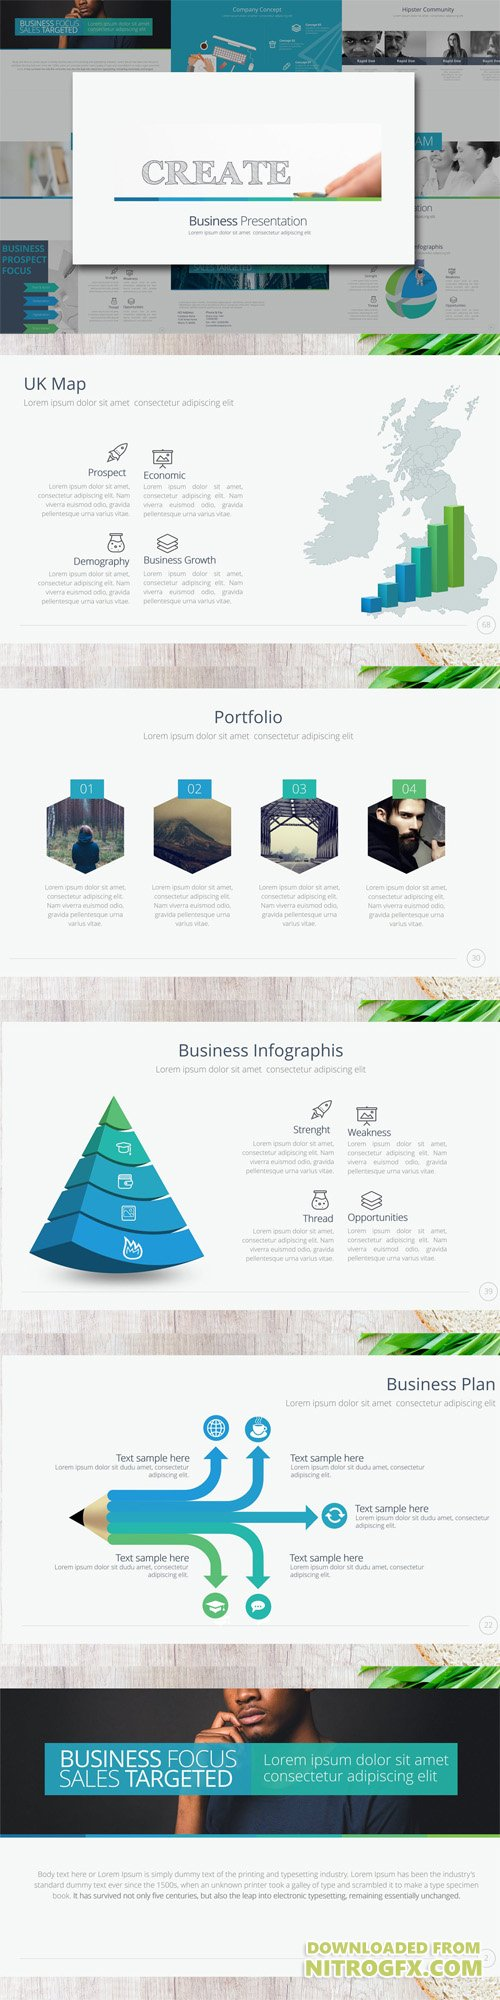 CREATE Business Powerpoint